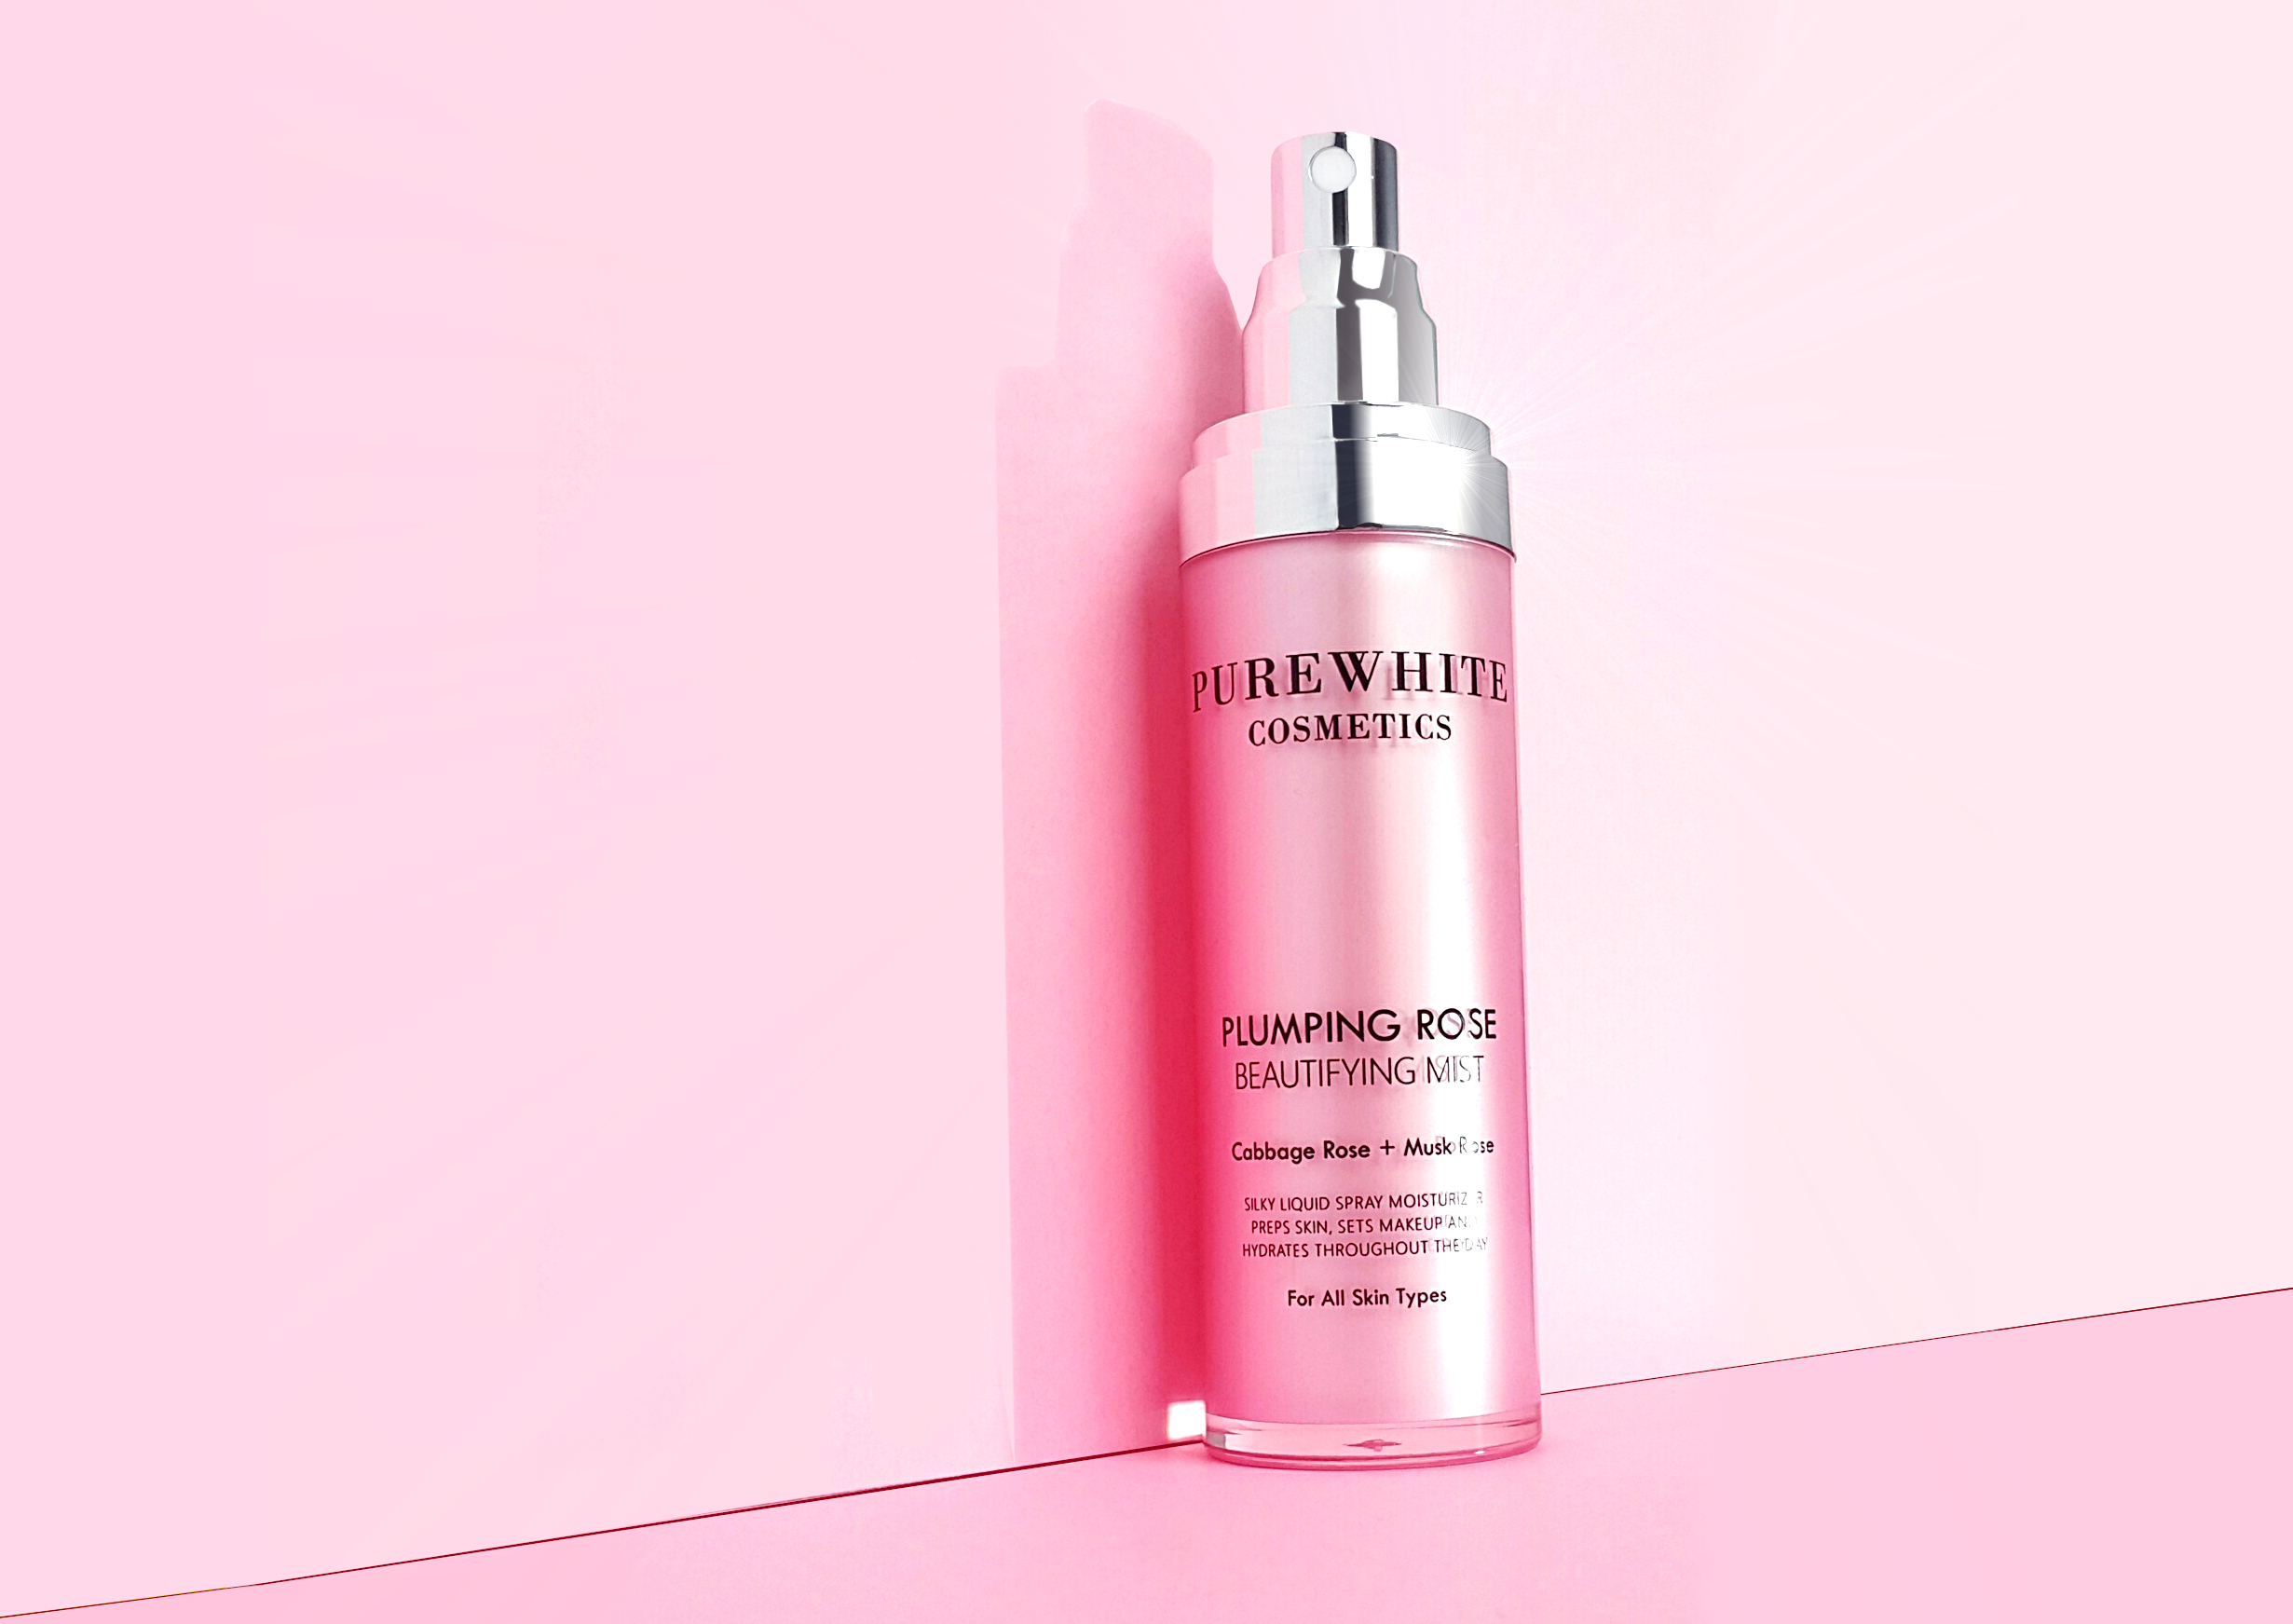 Pure White Cosmetics - Plimping Rose Beautifying Mist